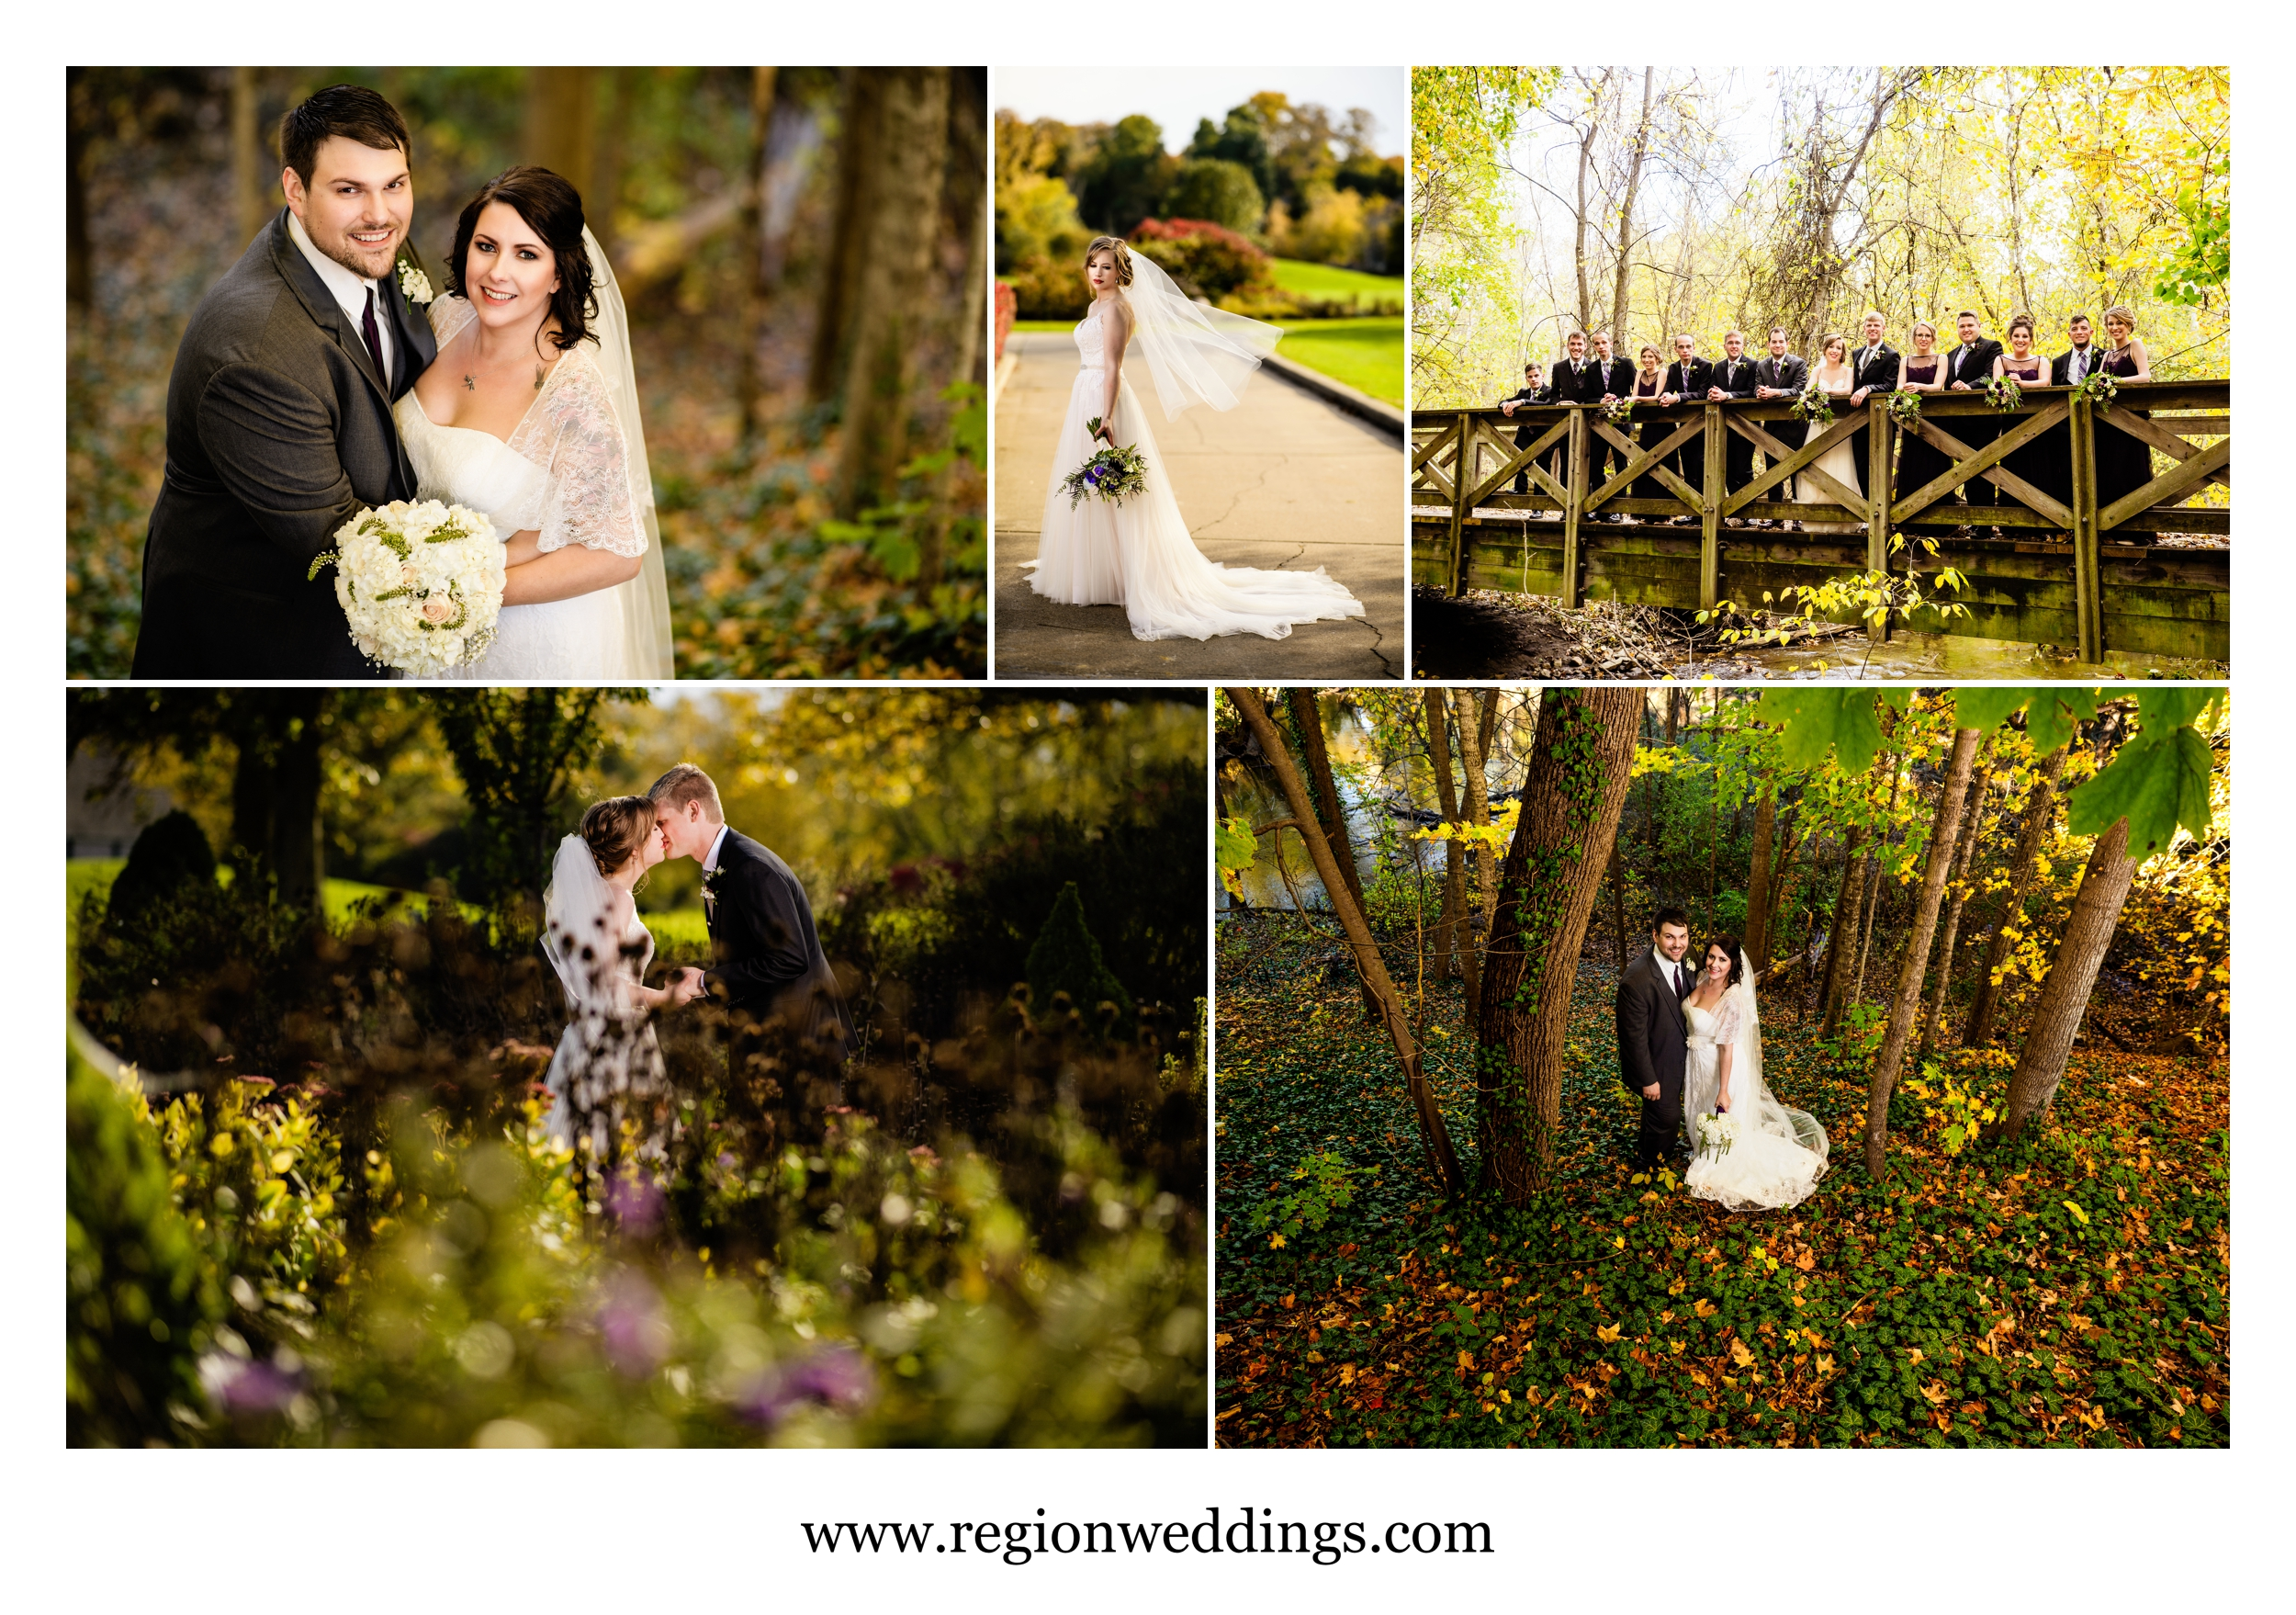 Autumn leaves at wedding venues Sand Creek Country Club and The Spa.